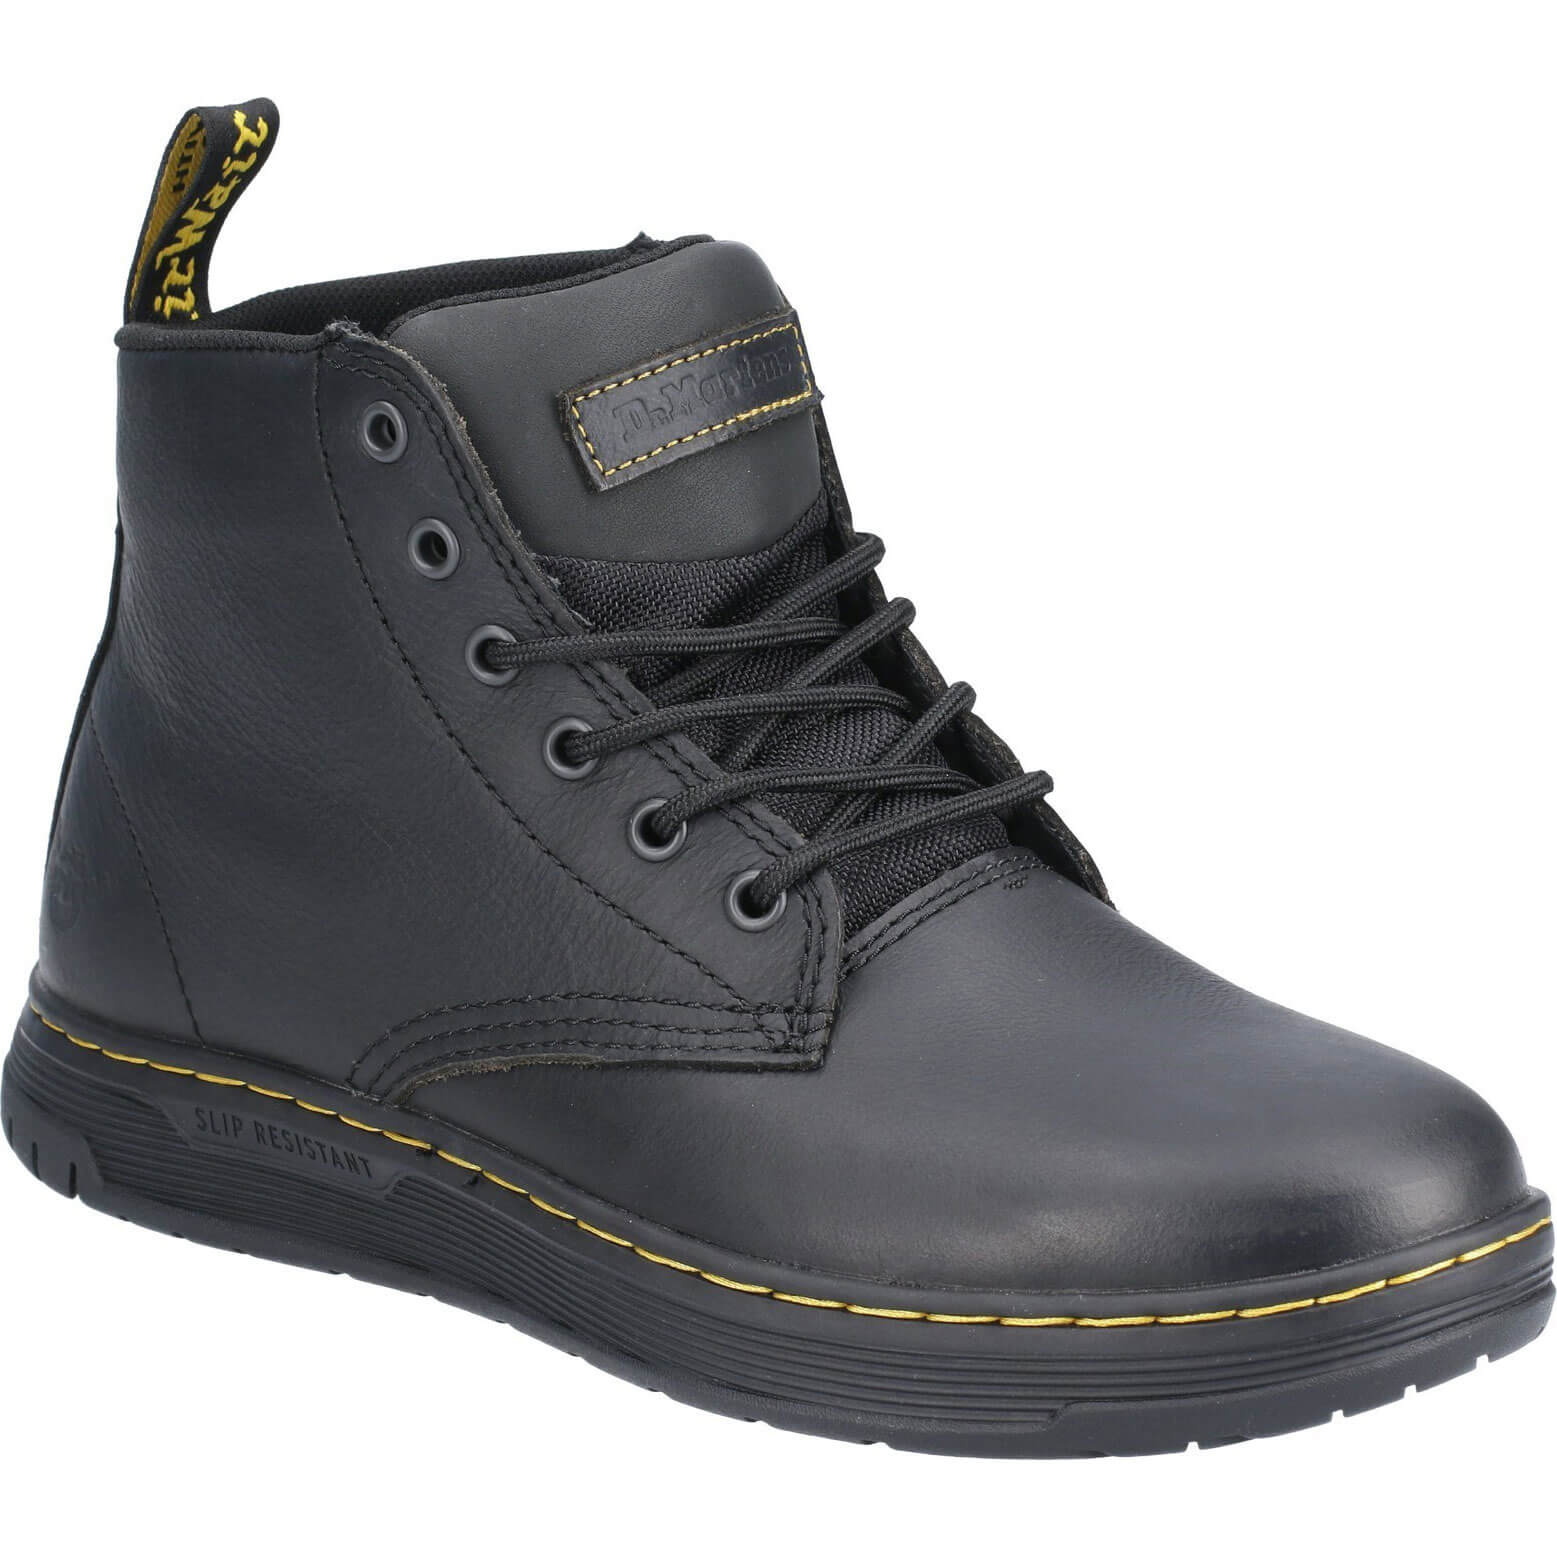 Image of Dr Martens Amwell Safety Boot Black Size 11